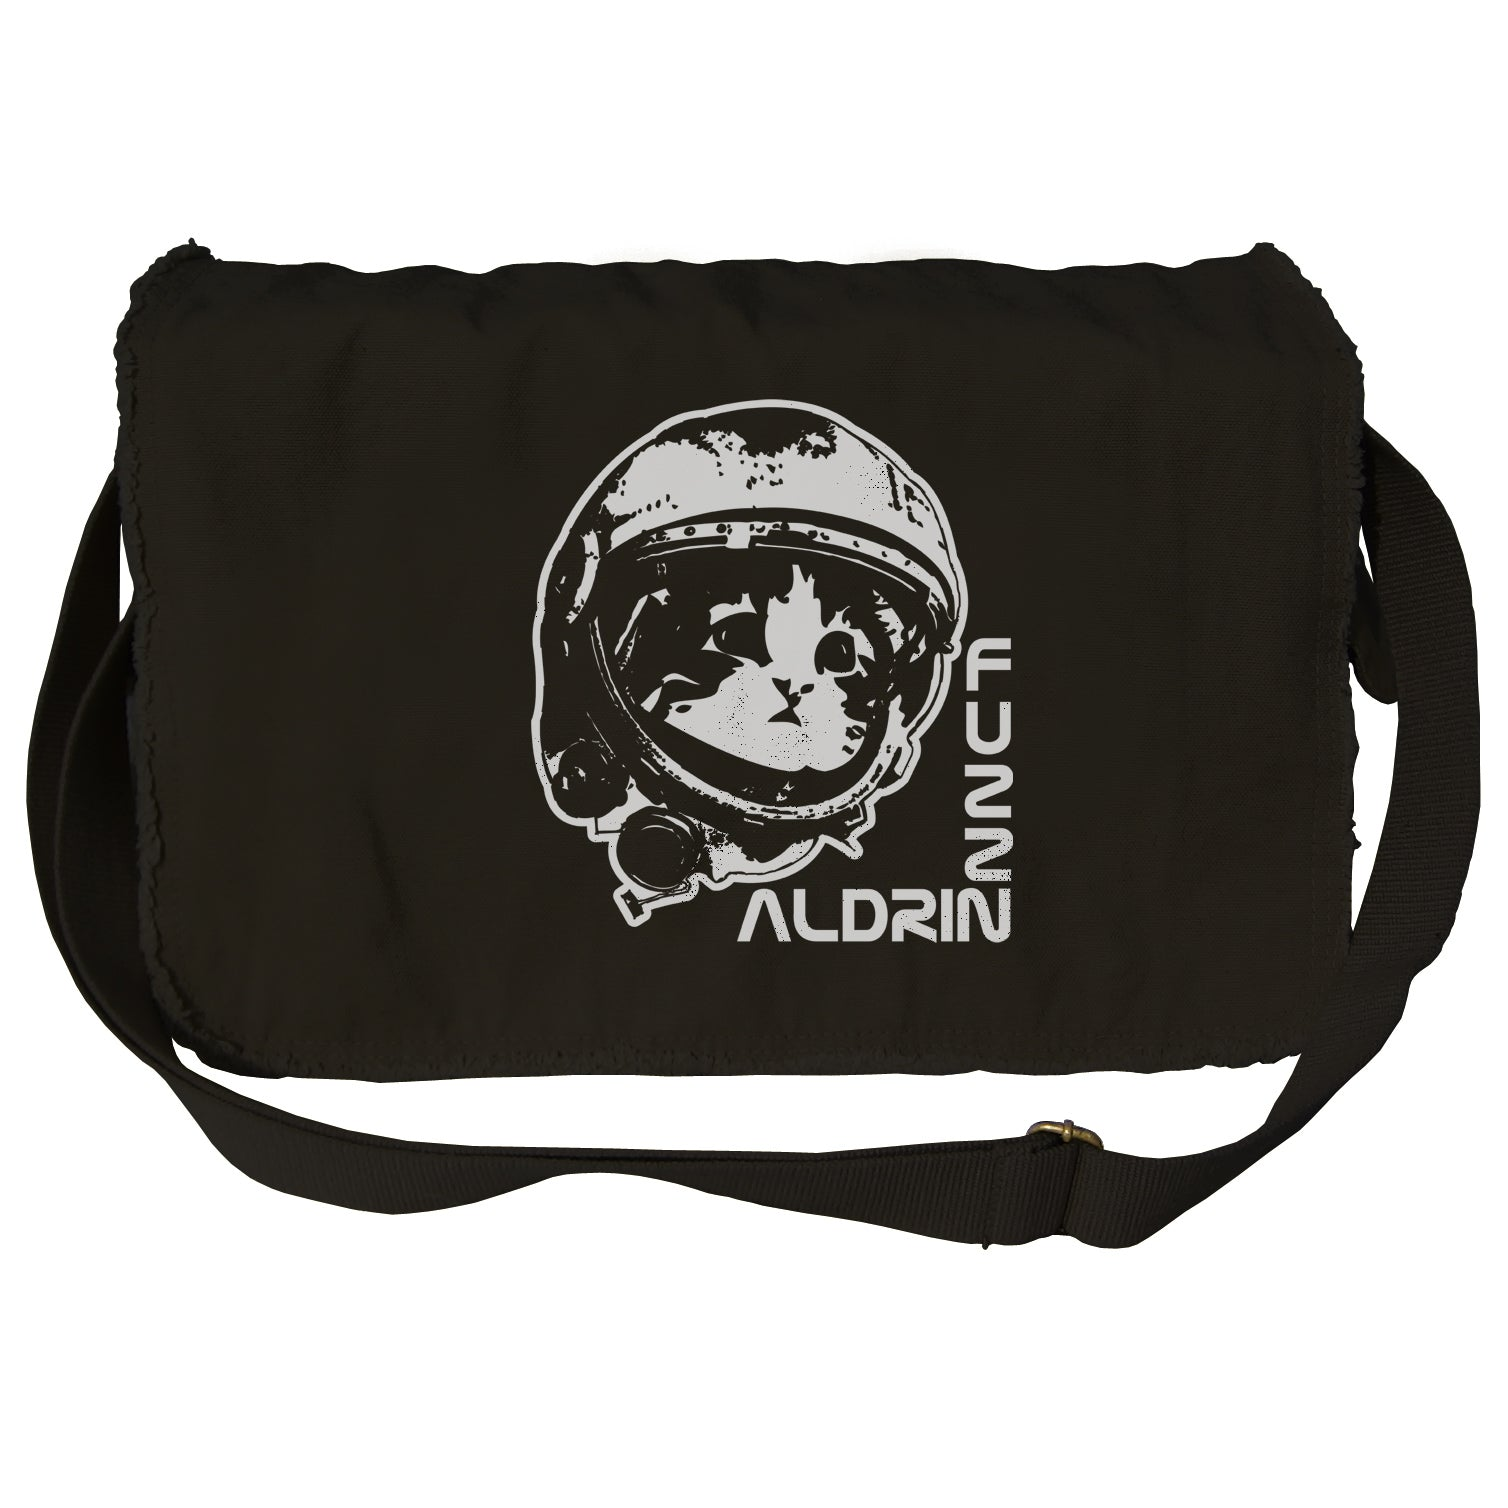 Fuzz Aldrin Messenger Bag - By Ex-Boyfriend